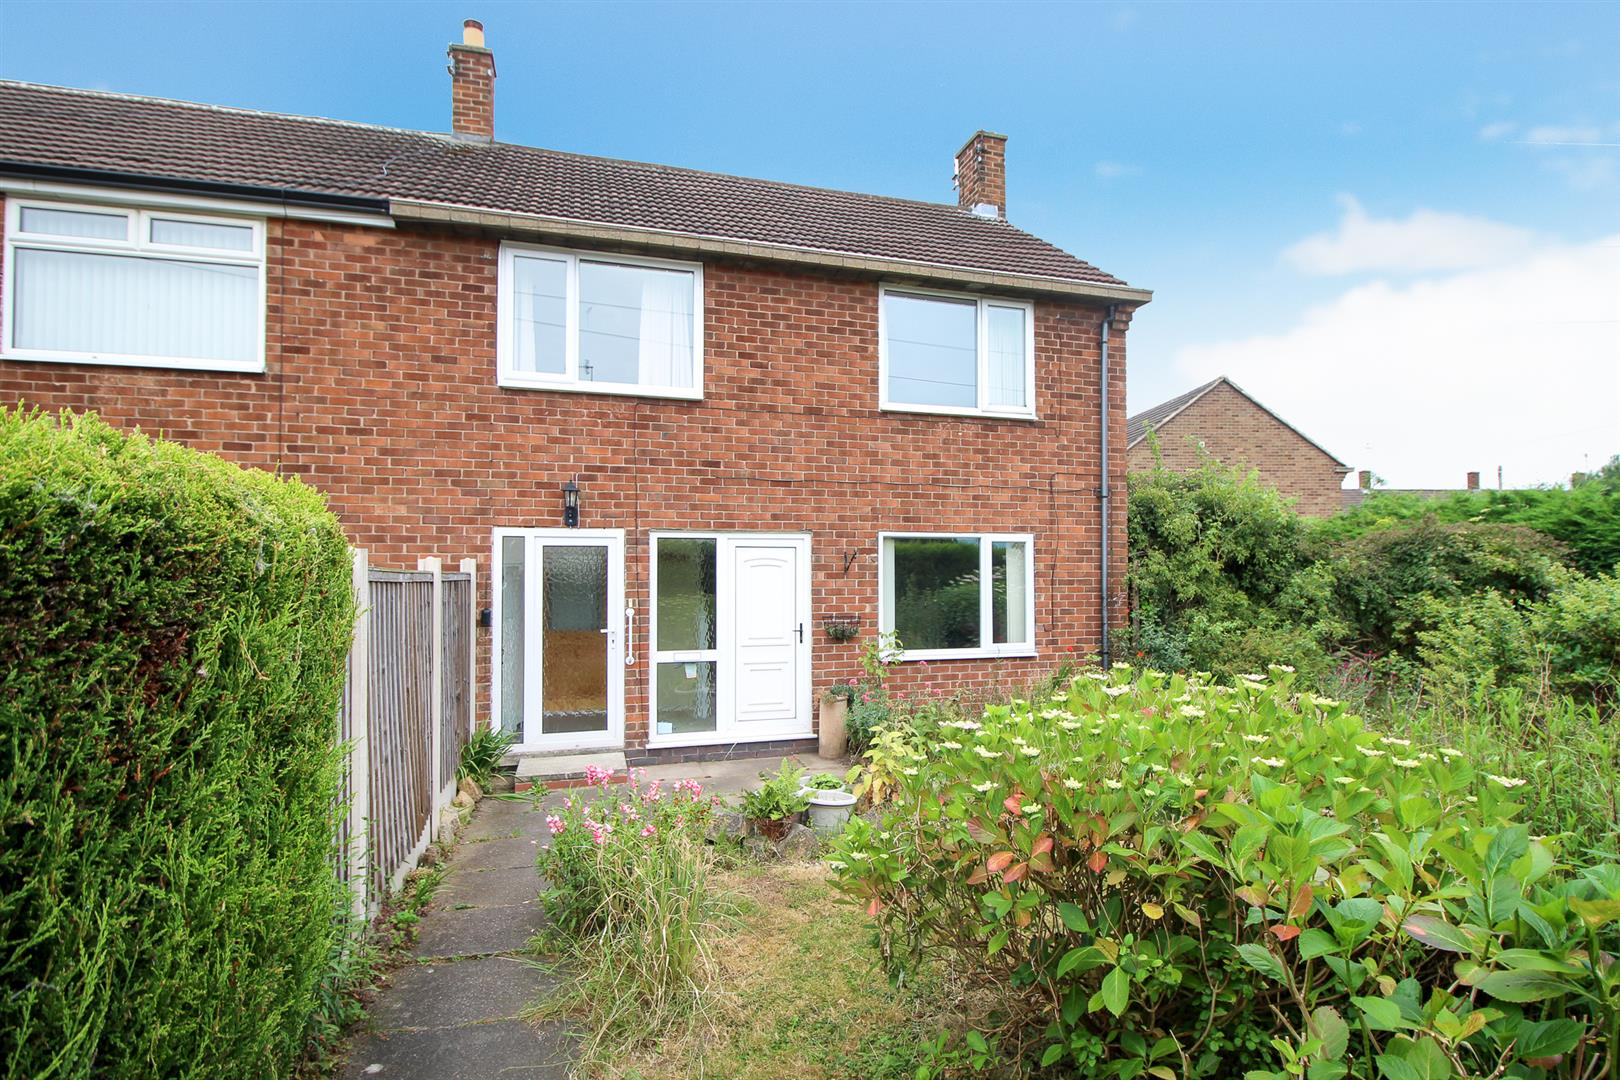 3 Bedrooms End Of Terrace House for sale in Rylands Close, Beeston Rylands